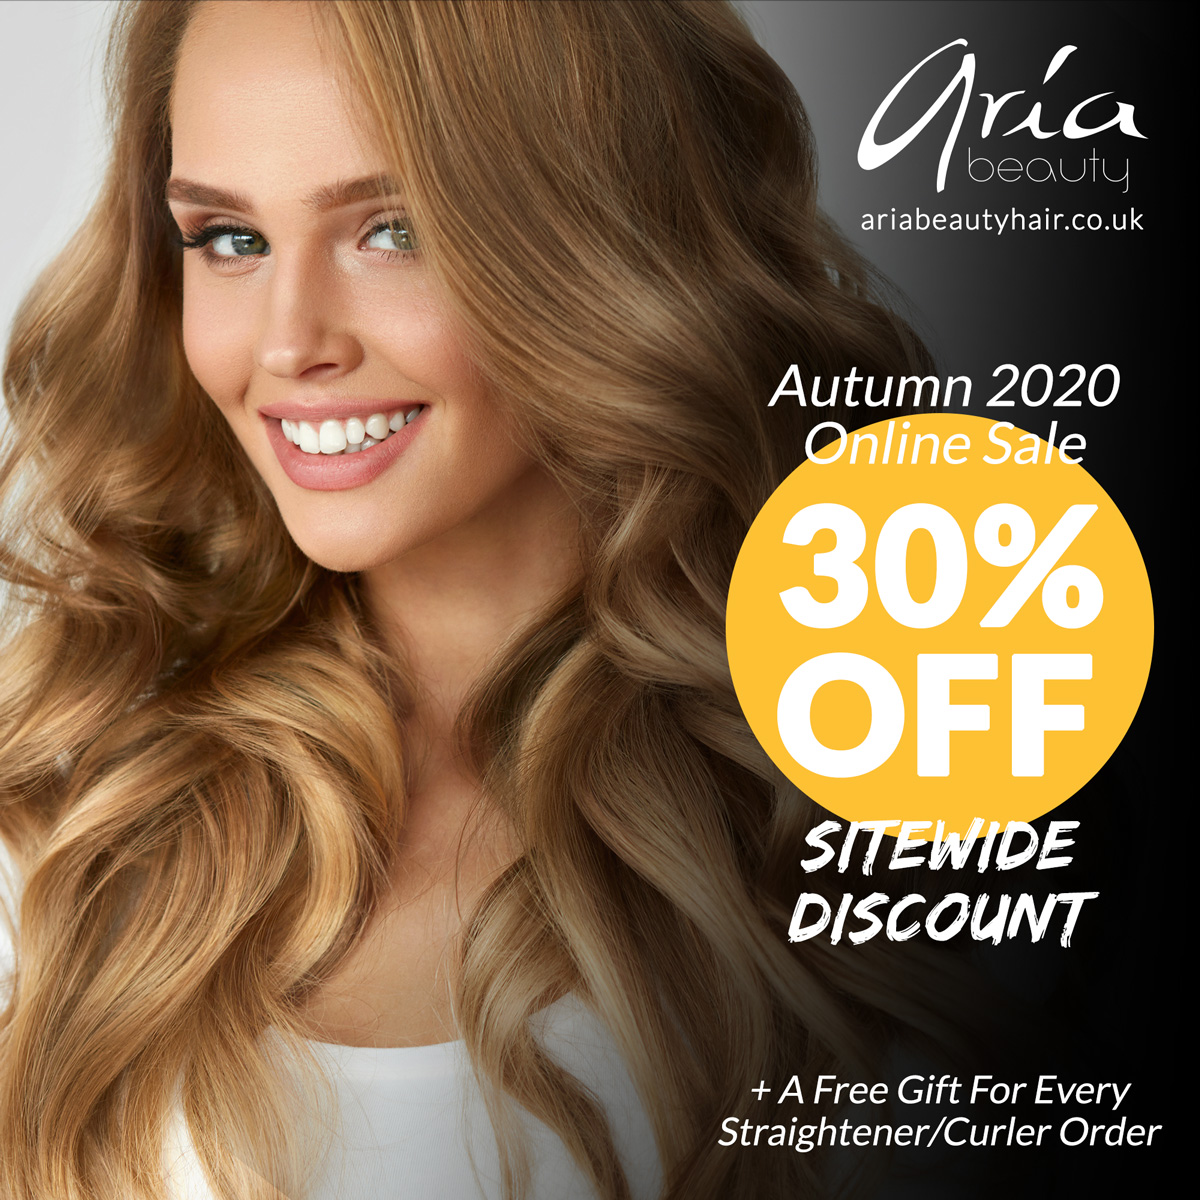 Autumn 2020 Online Sale on Aria Beauty Europe